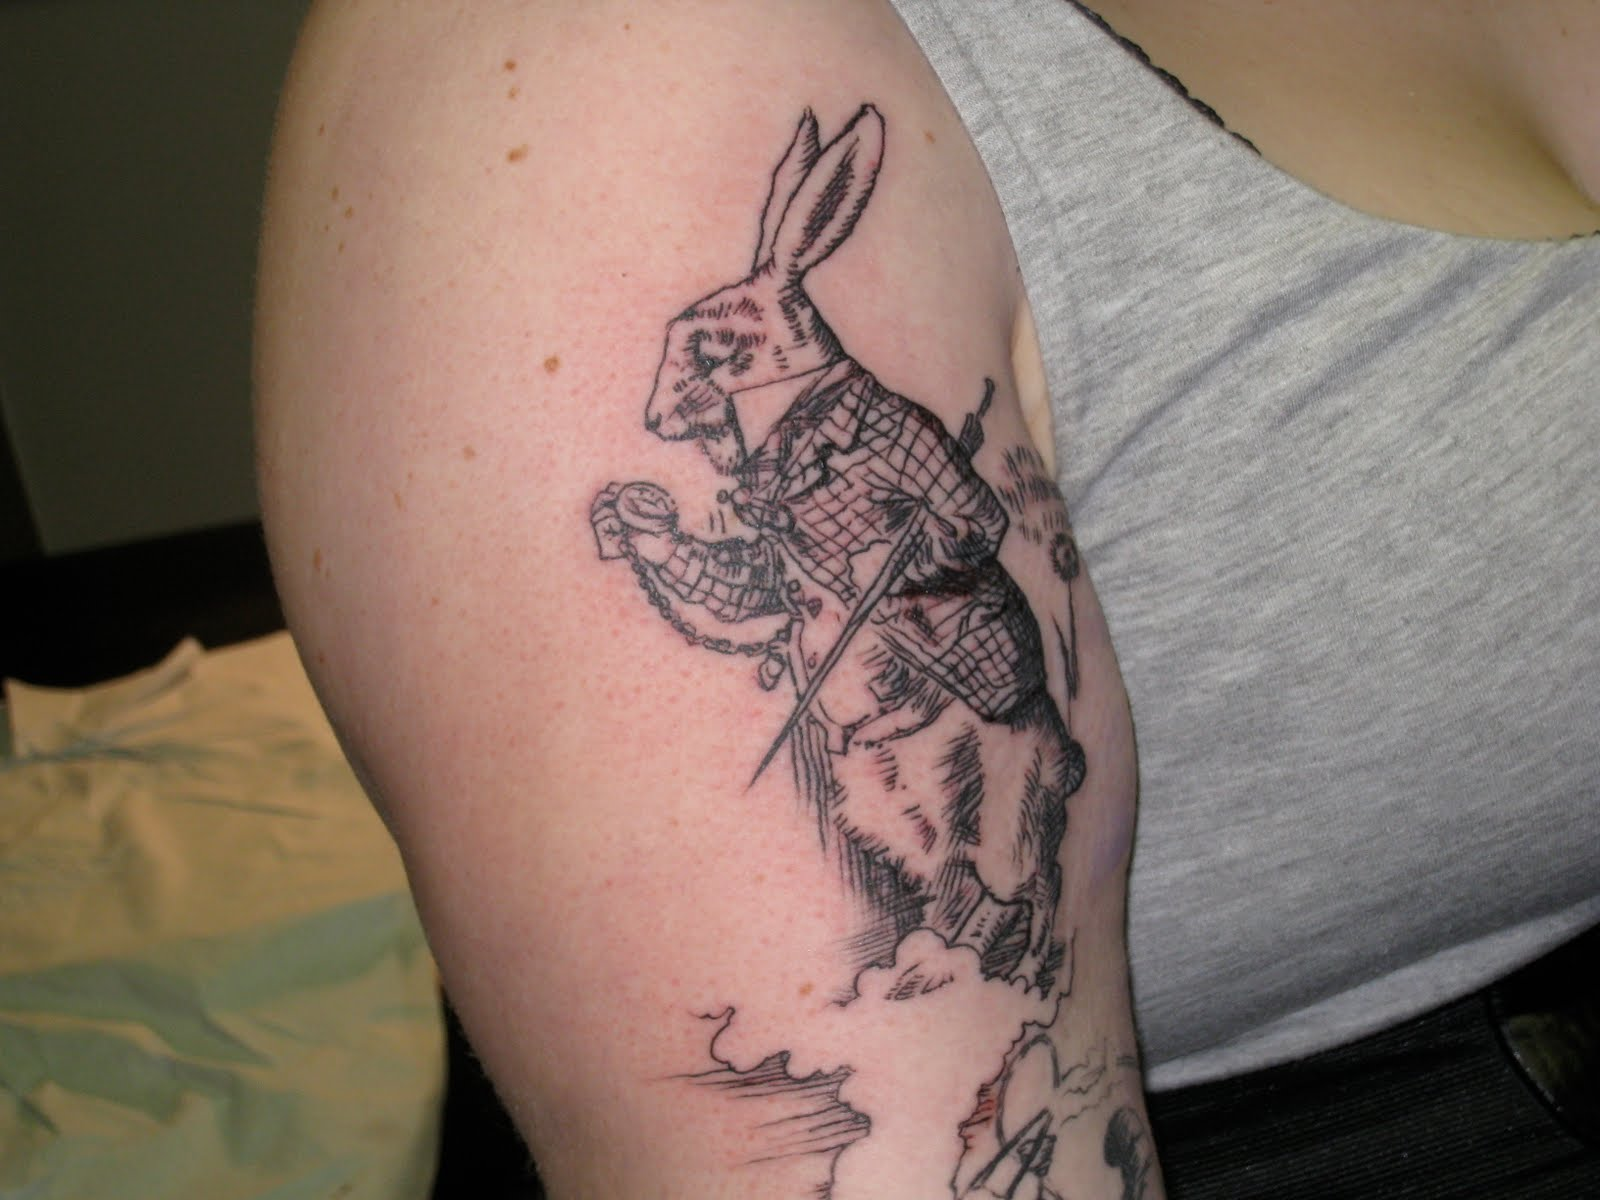 Funny rabbit tattoo on arm